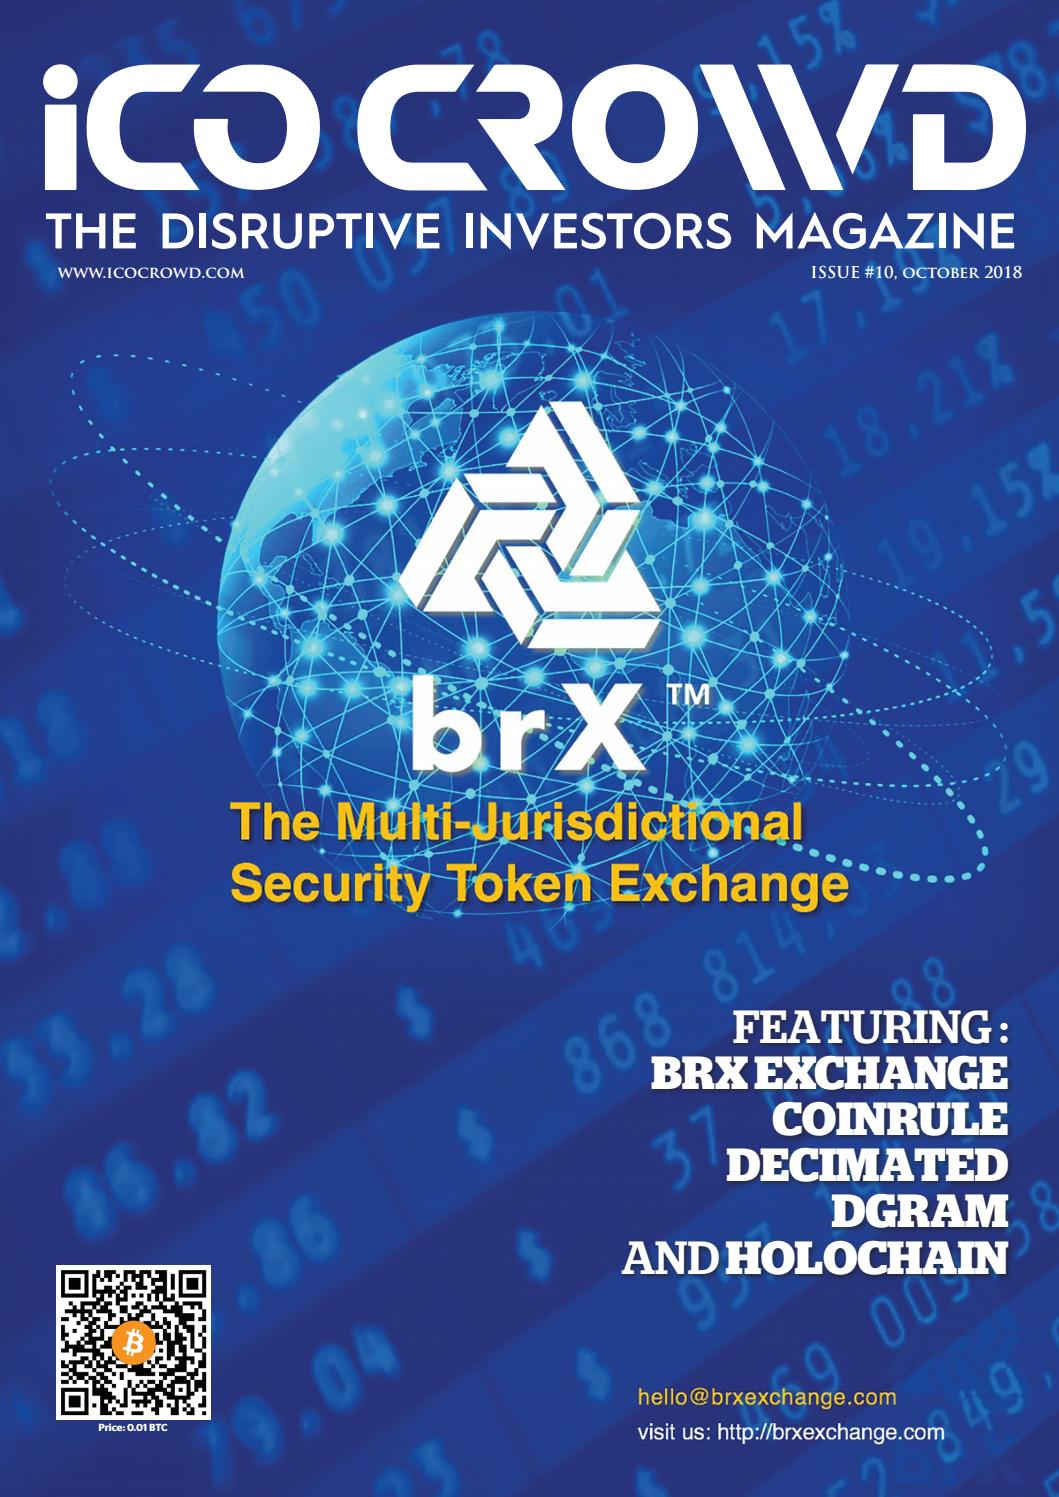 ICO CROWD ISSUE 10 by Ico Crowd - issuu